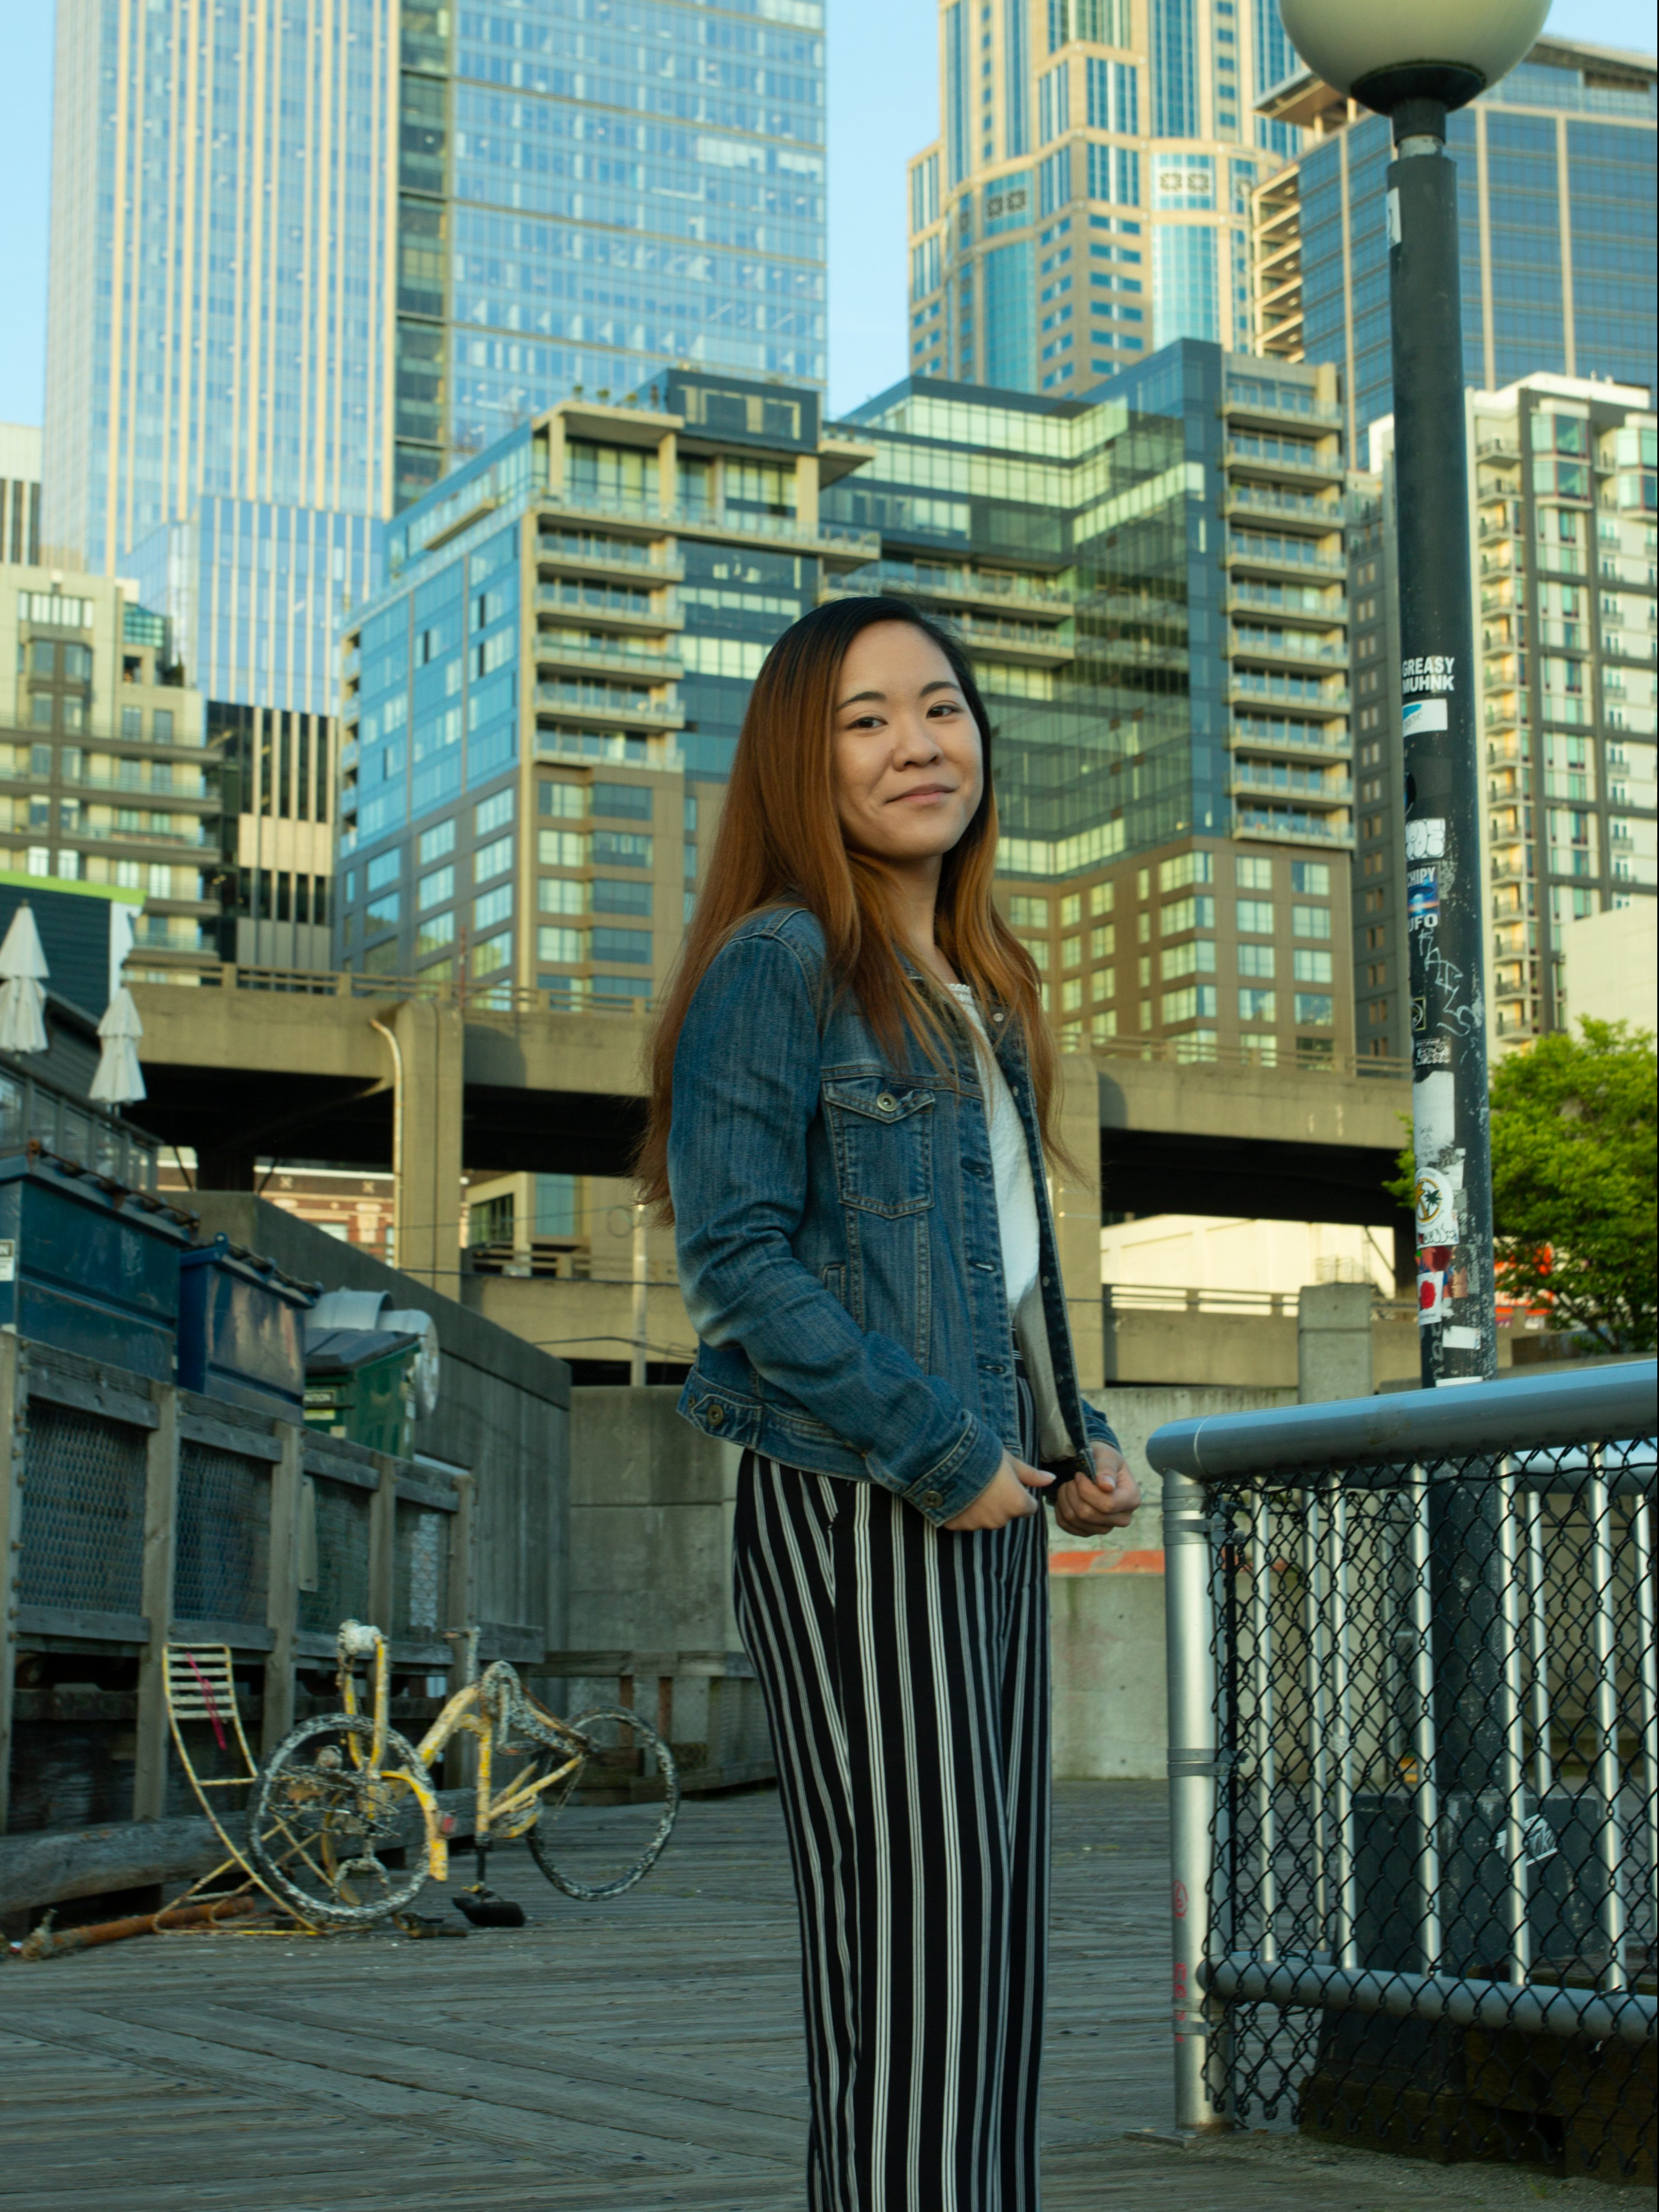 Valerie smiling in front of building